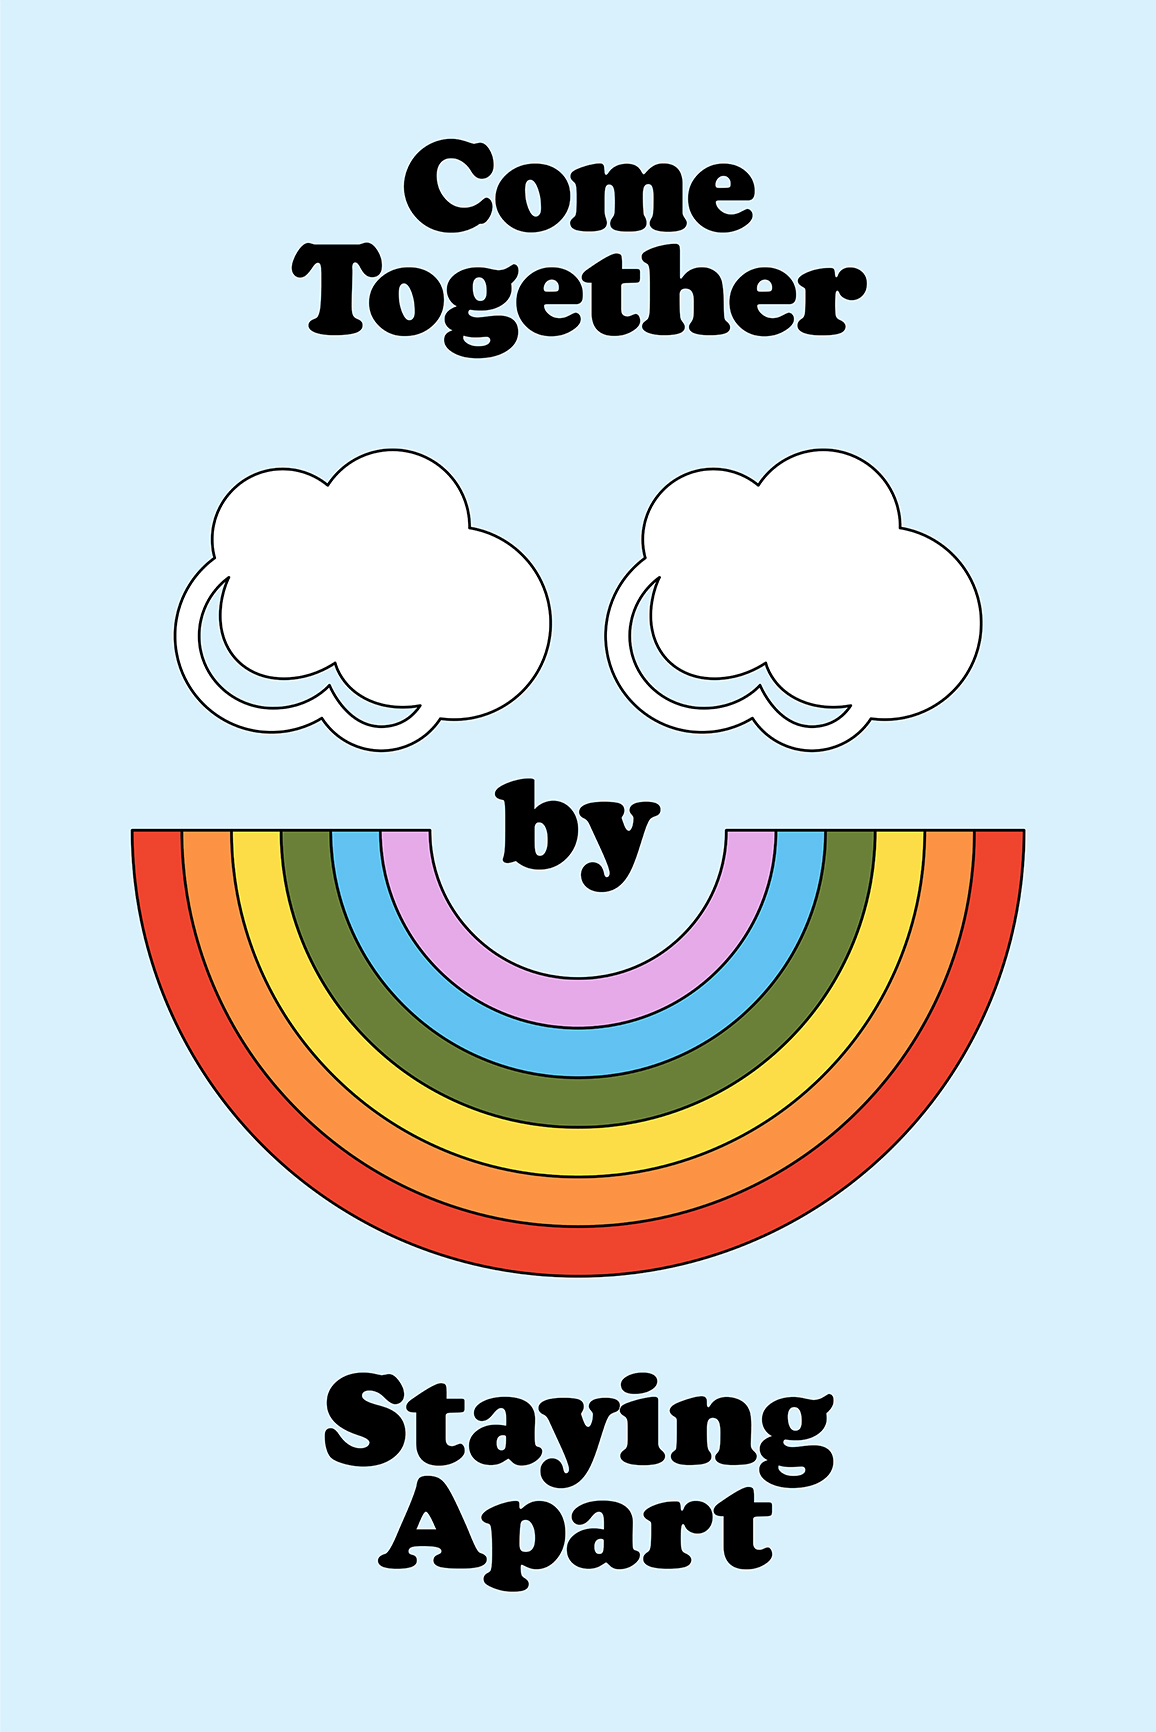 Come Together by Staying Apart